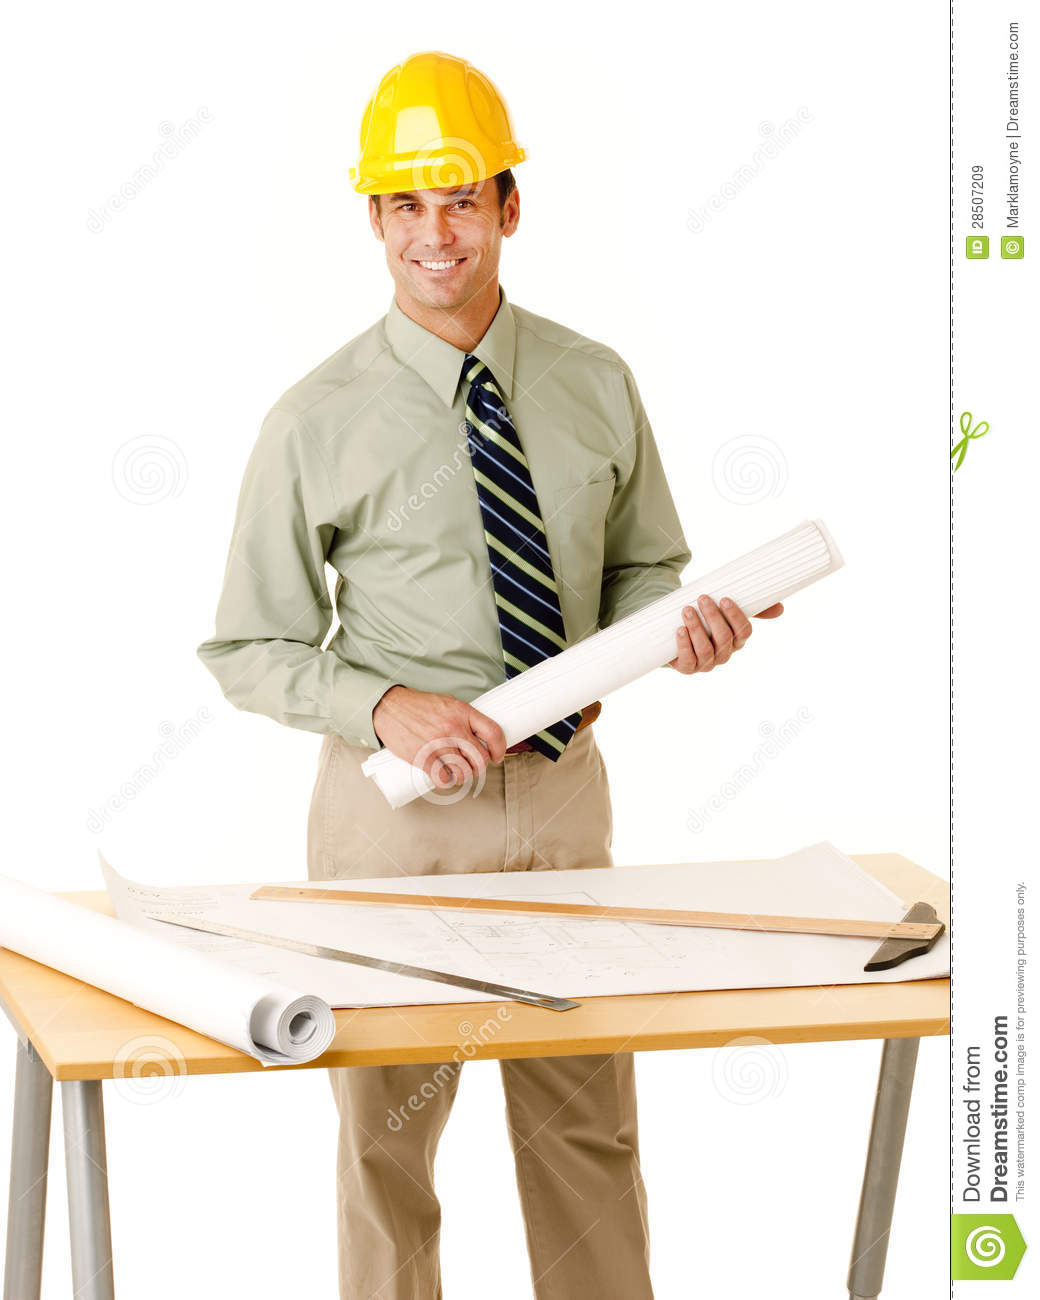 Architect in shirt and tie wearing a hard hat